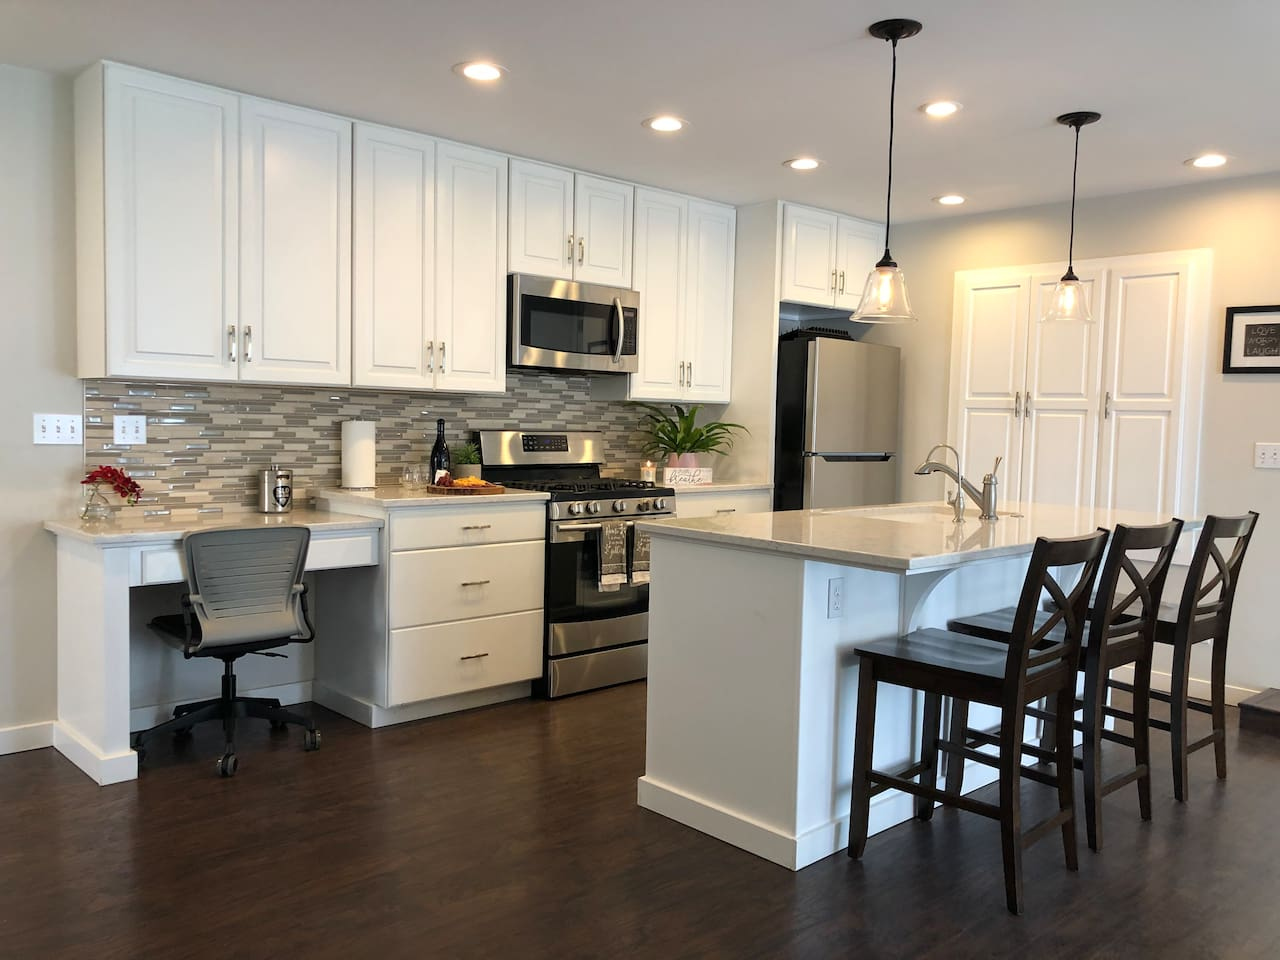 Modern Full Size Kitchen with Lots of Storage